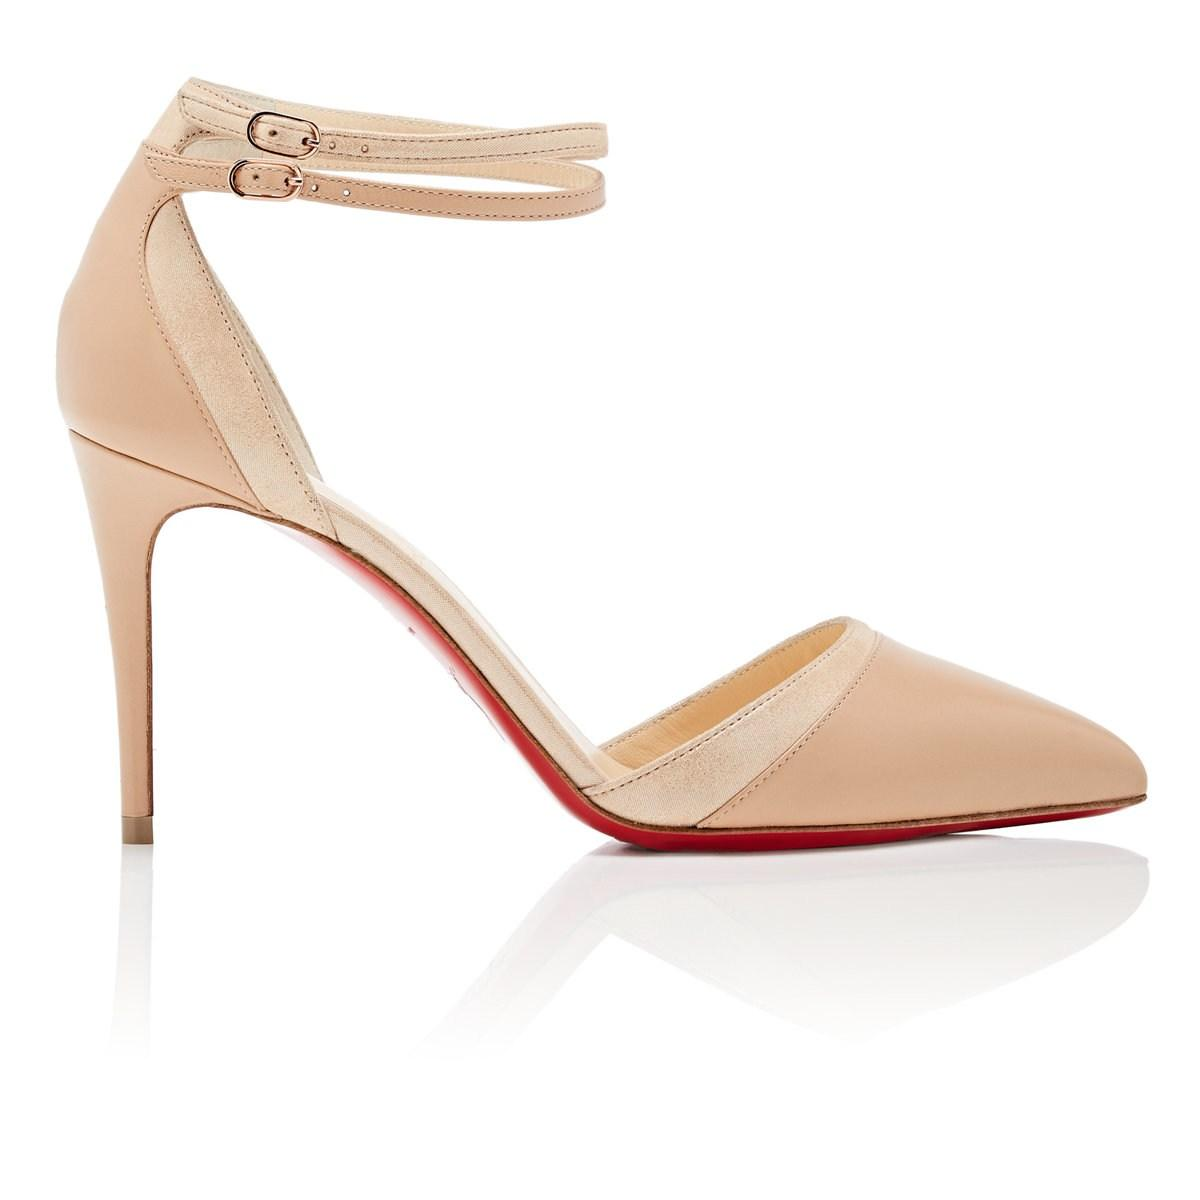 d1132797155 Christian Louboutin Uptown-double Leather Pumps - Lyst